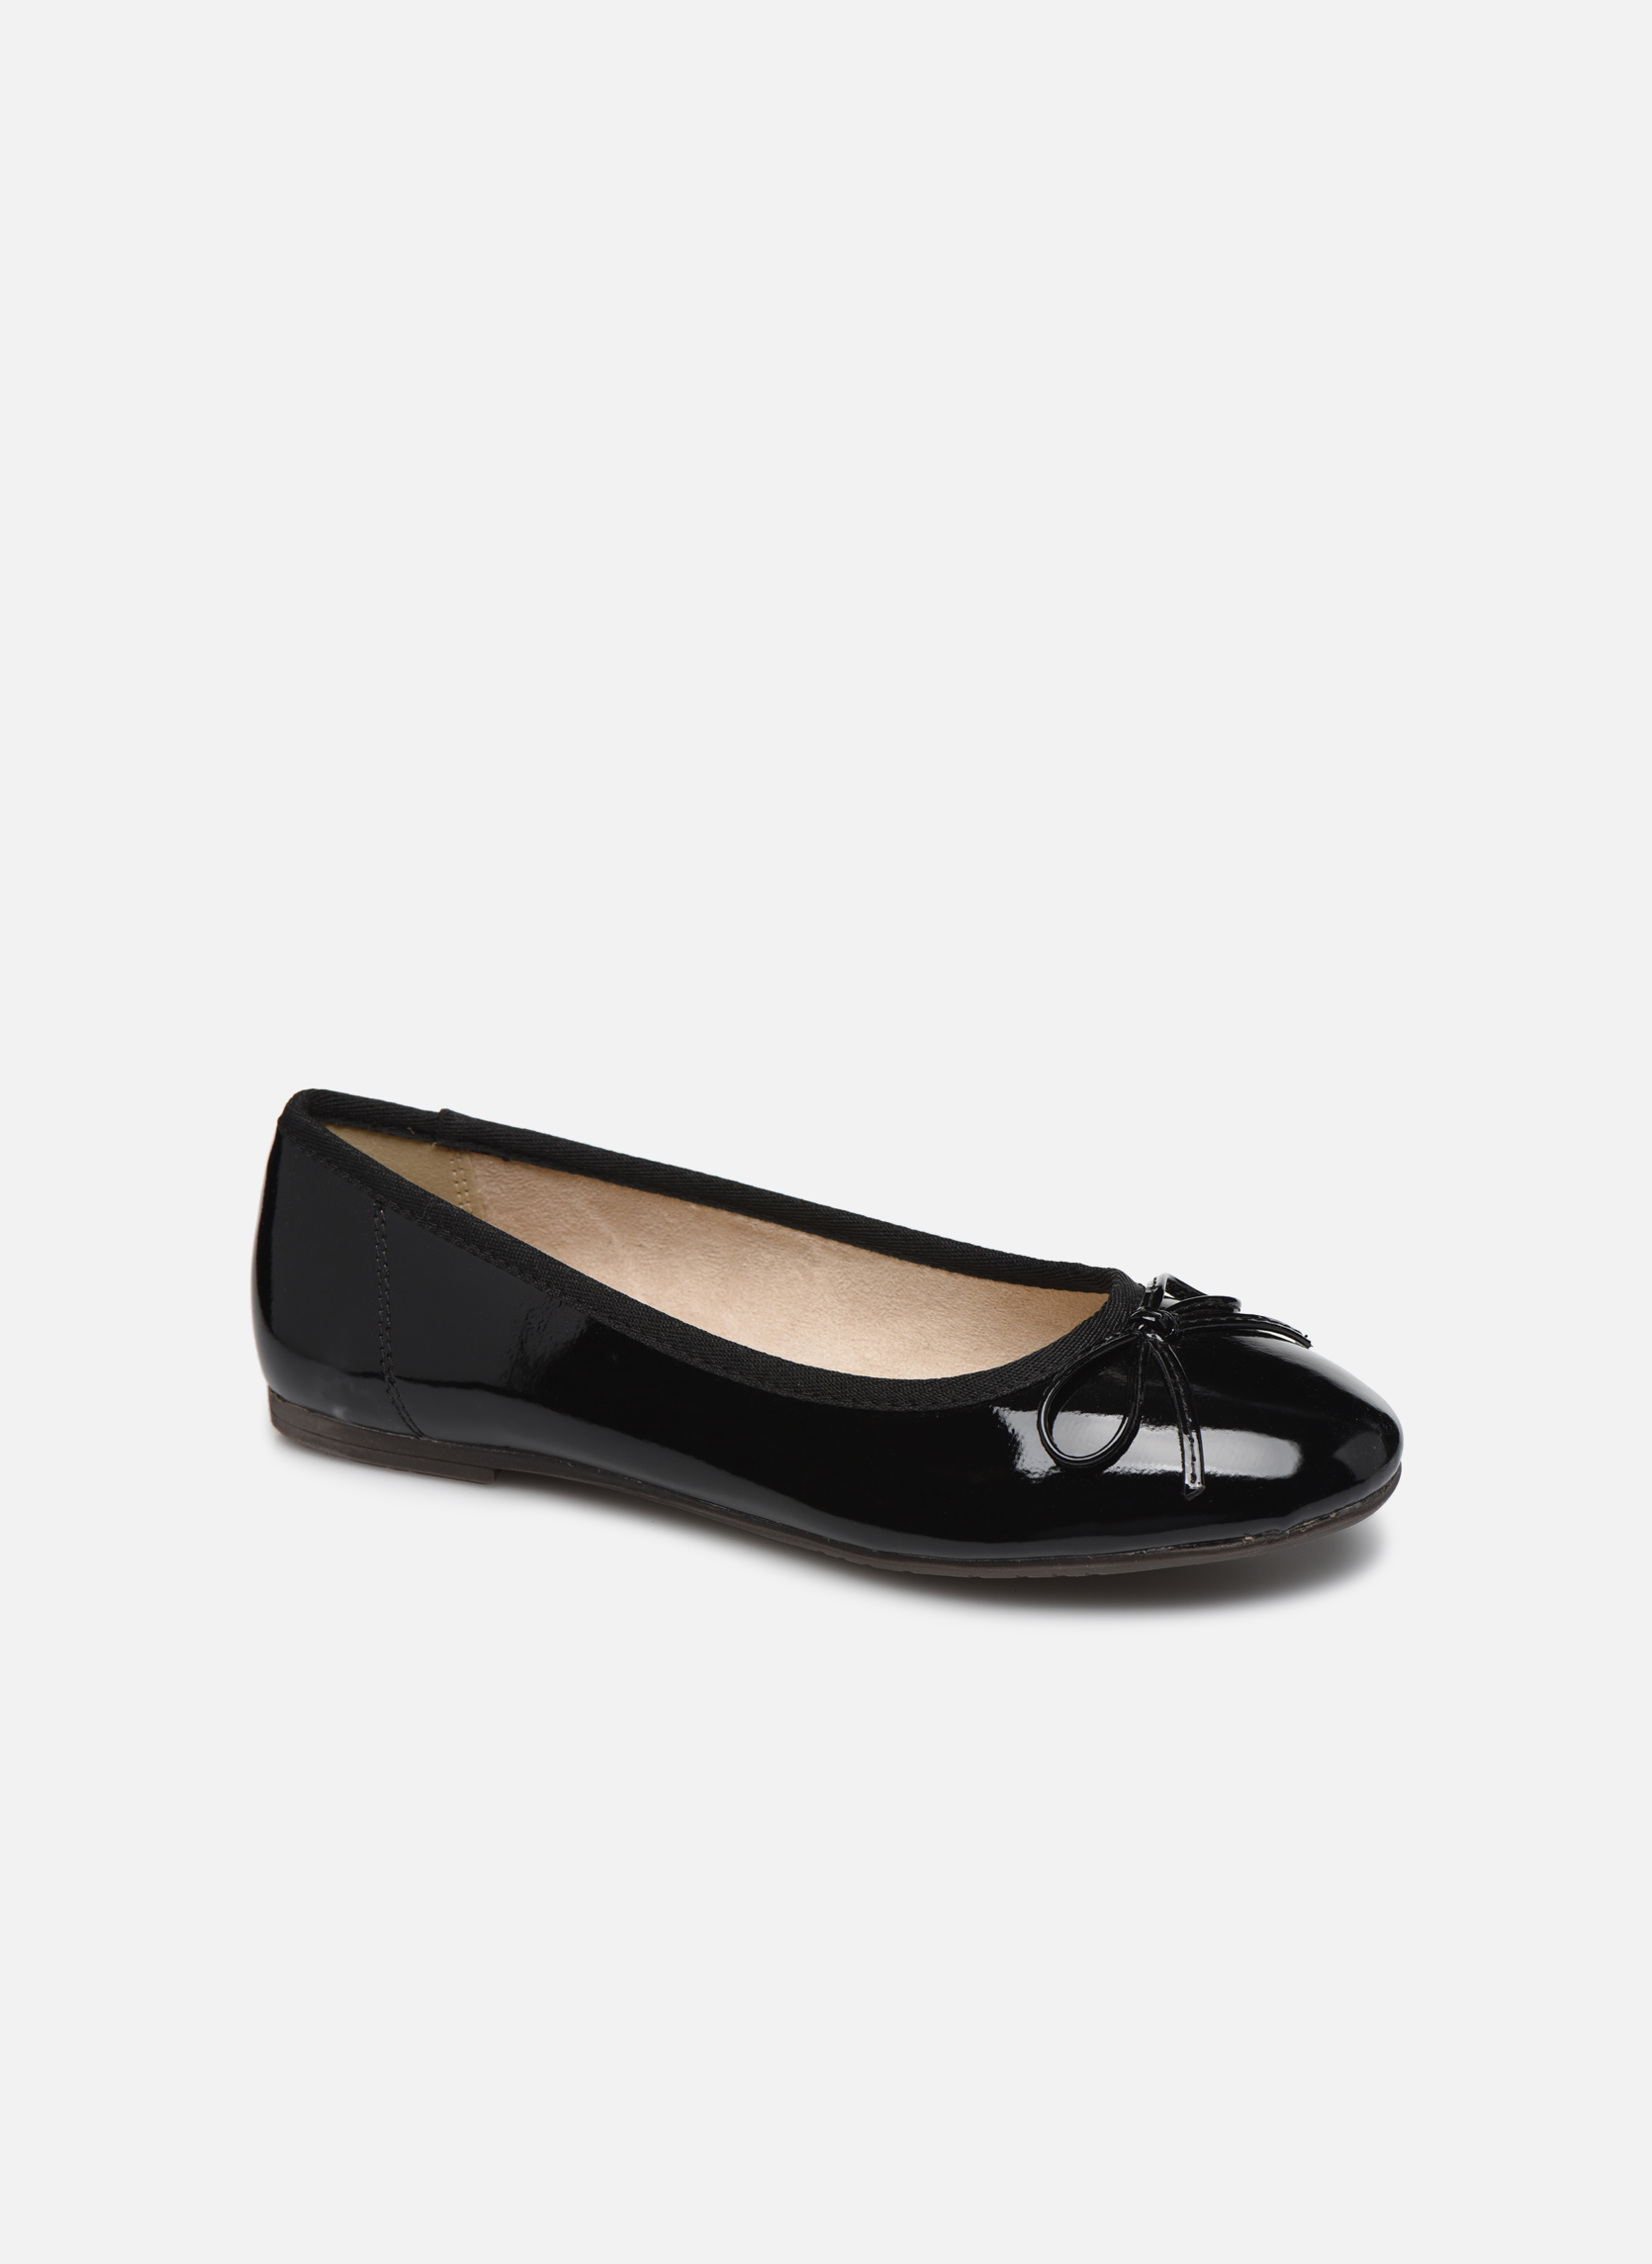 Lotusa Black Patent